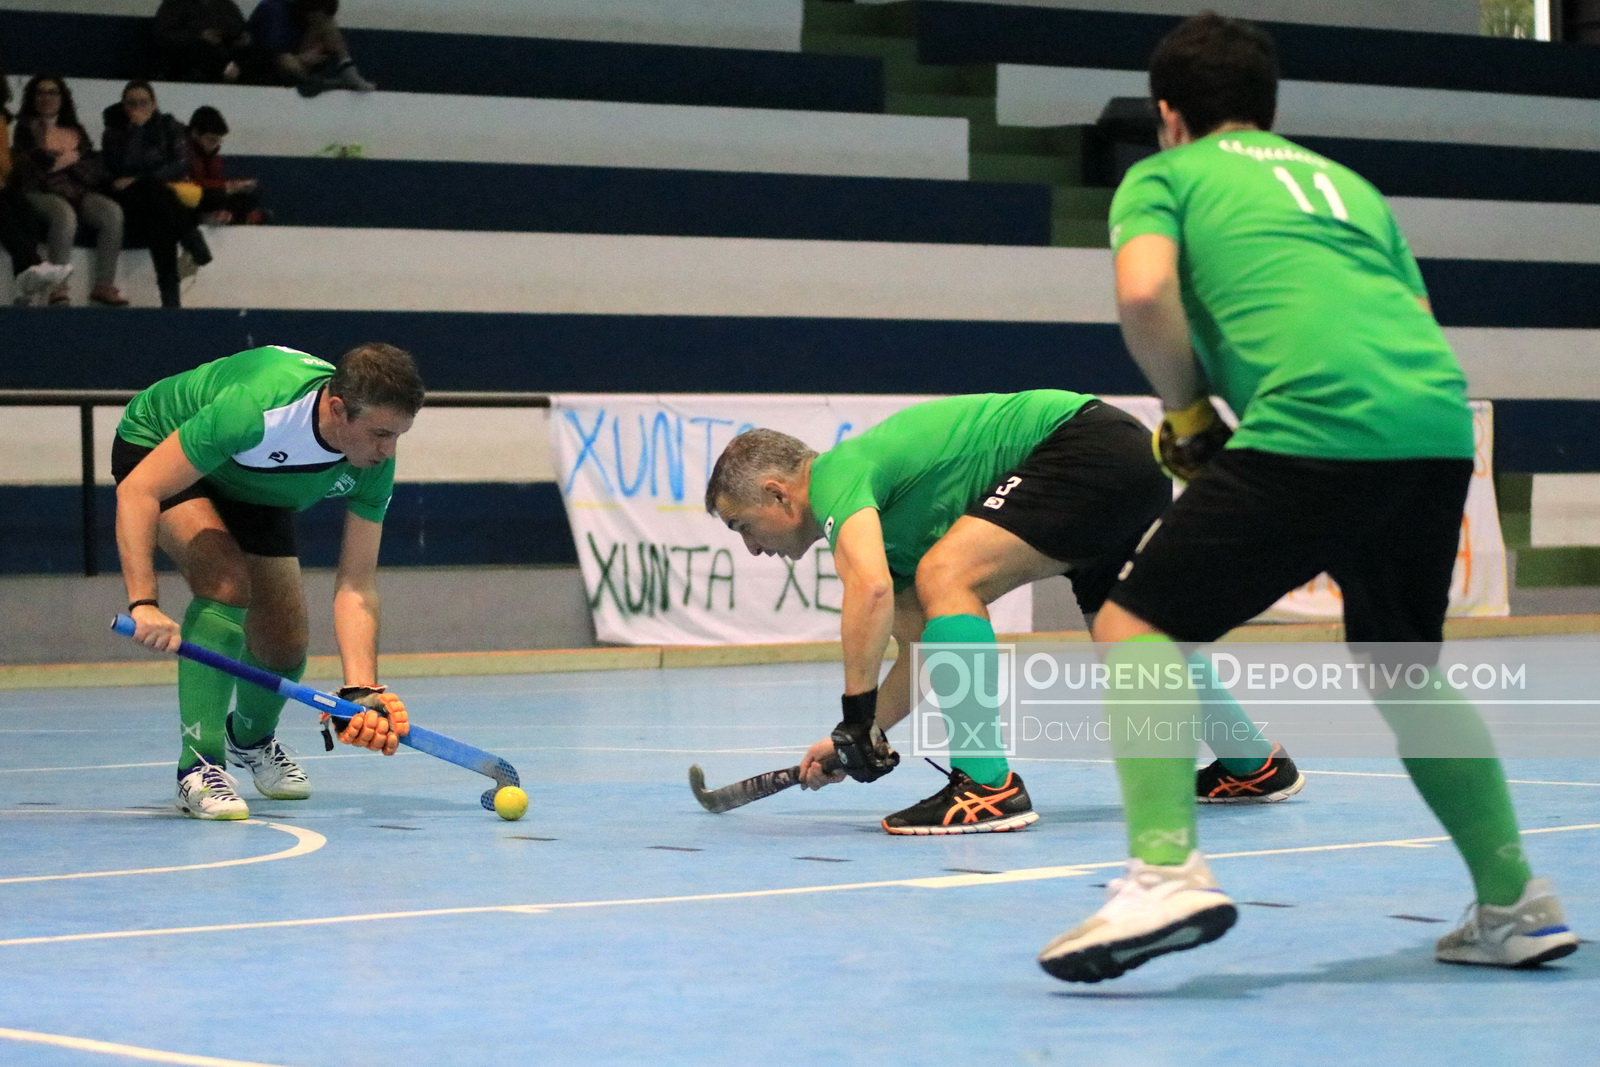 Hockey Sala Foto David Martinez